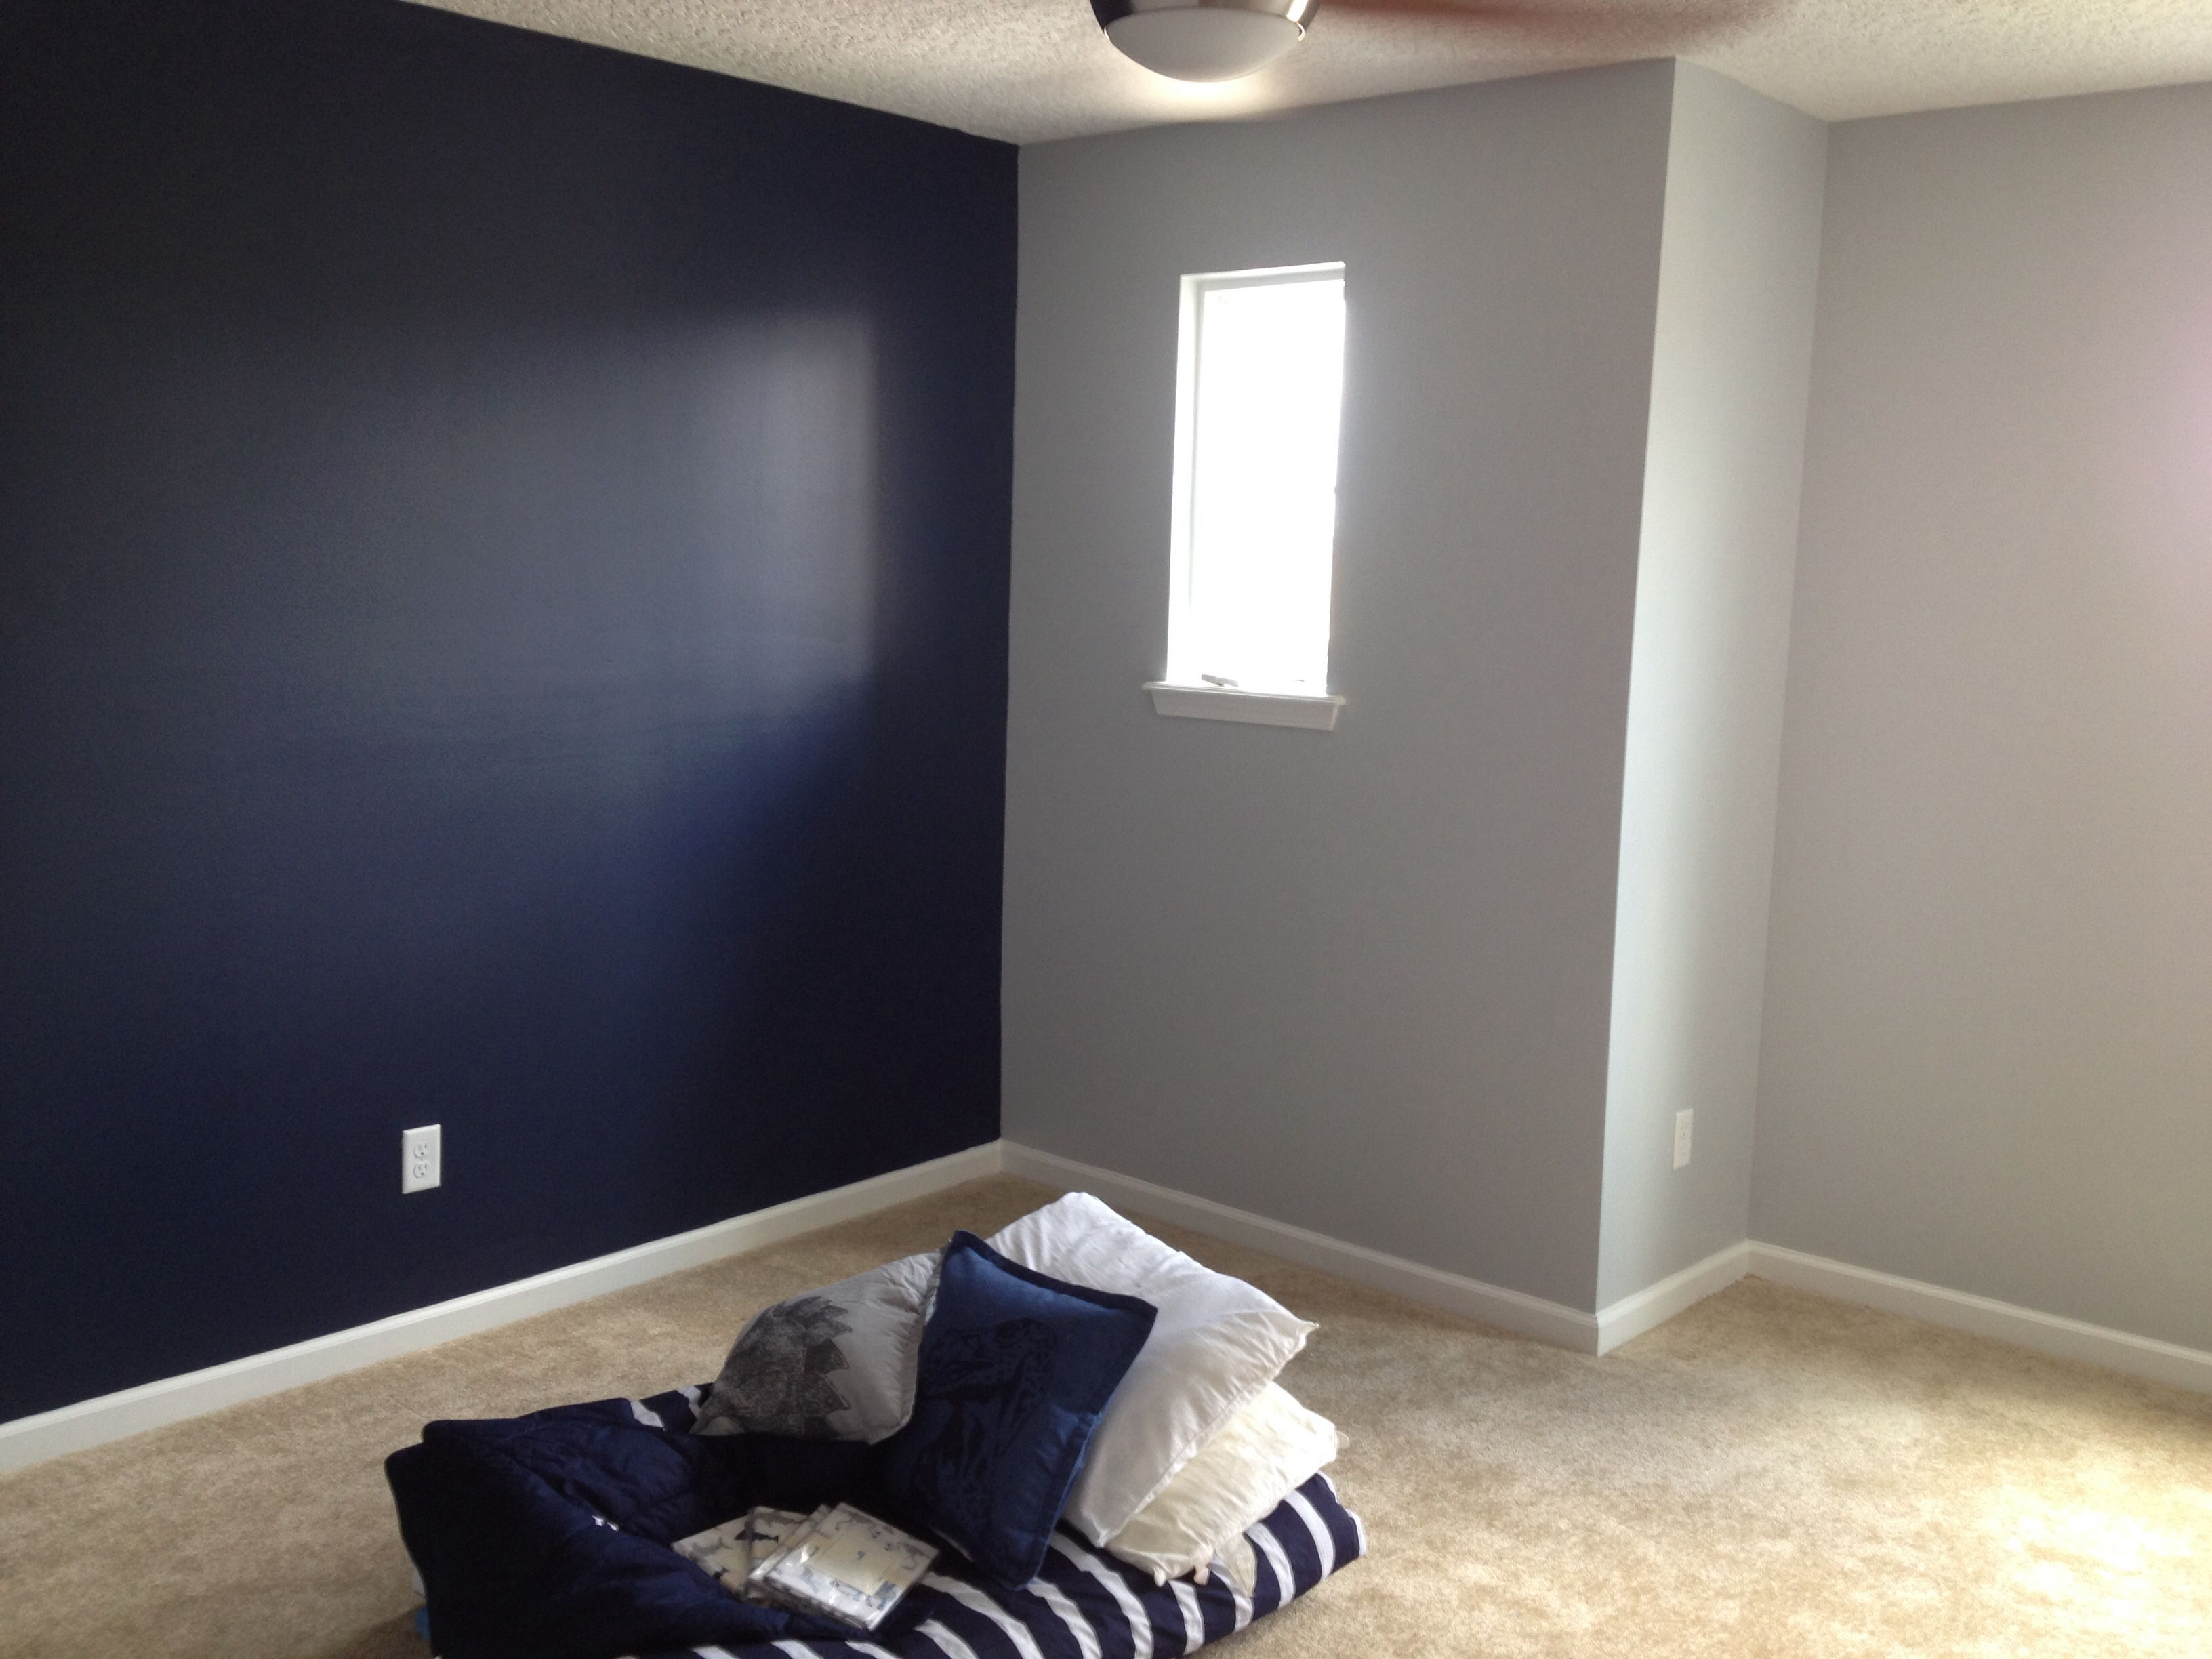 Best Sherwin Williams Naval With Gray Screen On Opposing Wall 640 x 480